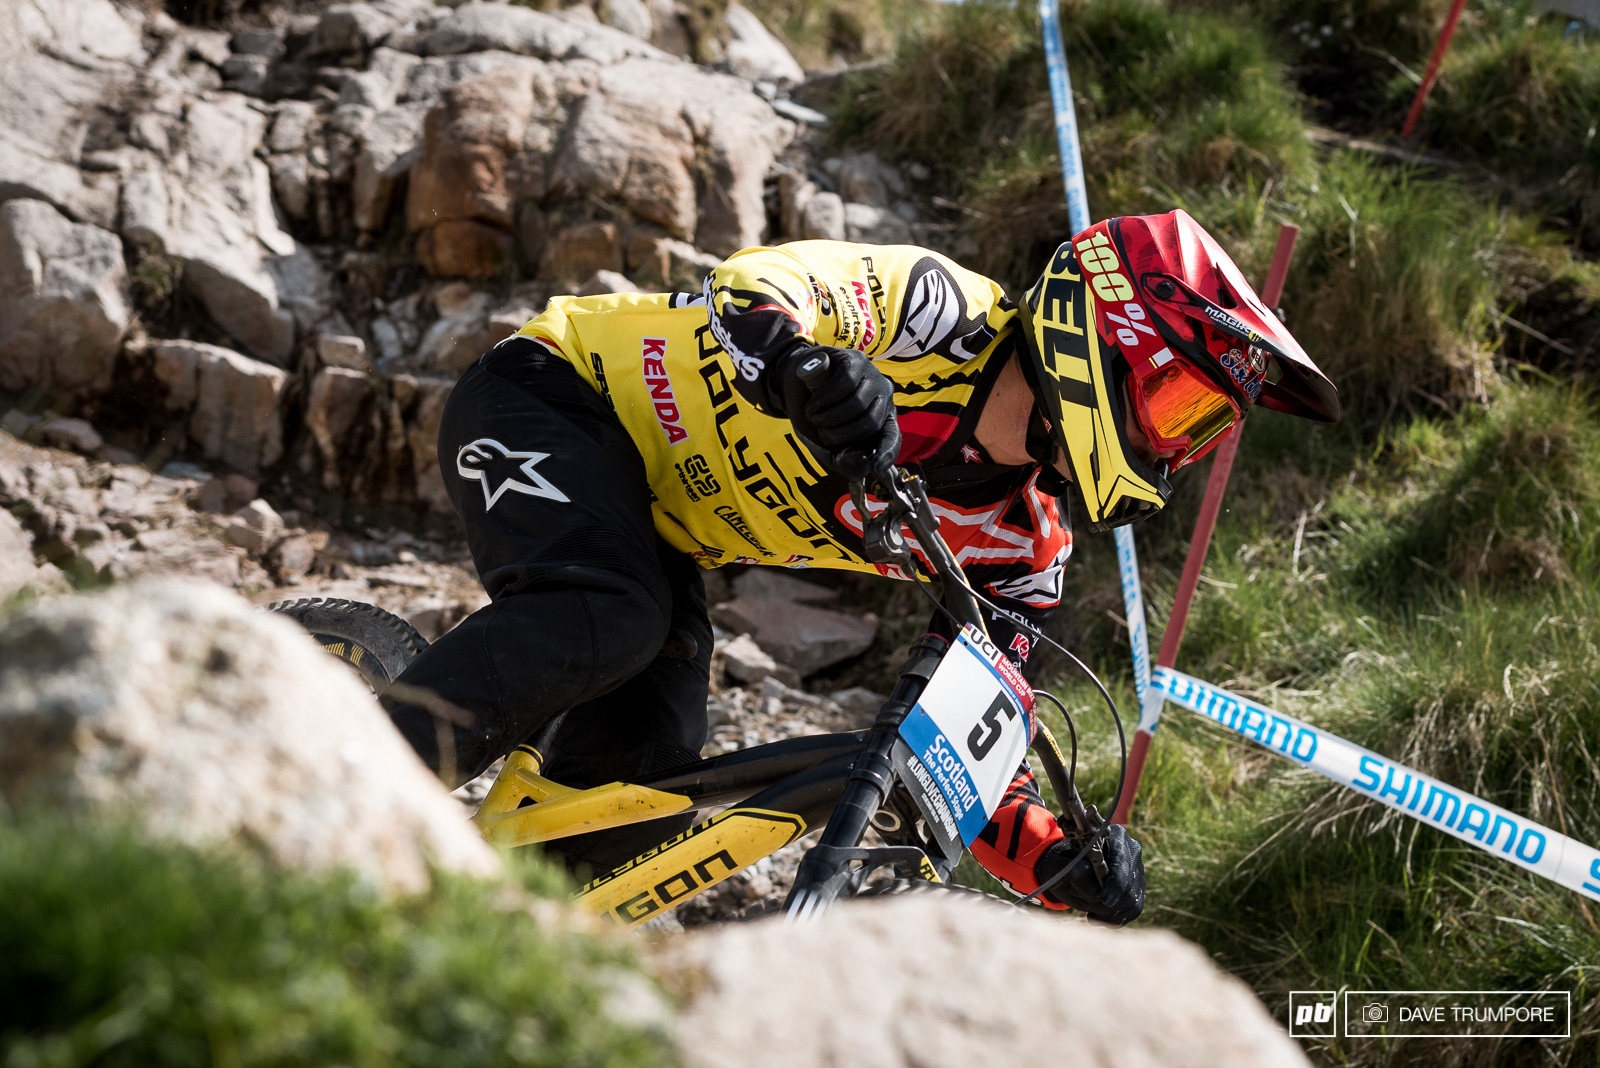 Mick Hannah too a DNF after a massive crash up top but he was uninjured and will line up to duke it out in the final.